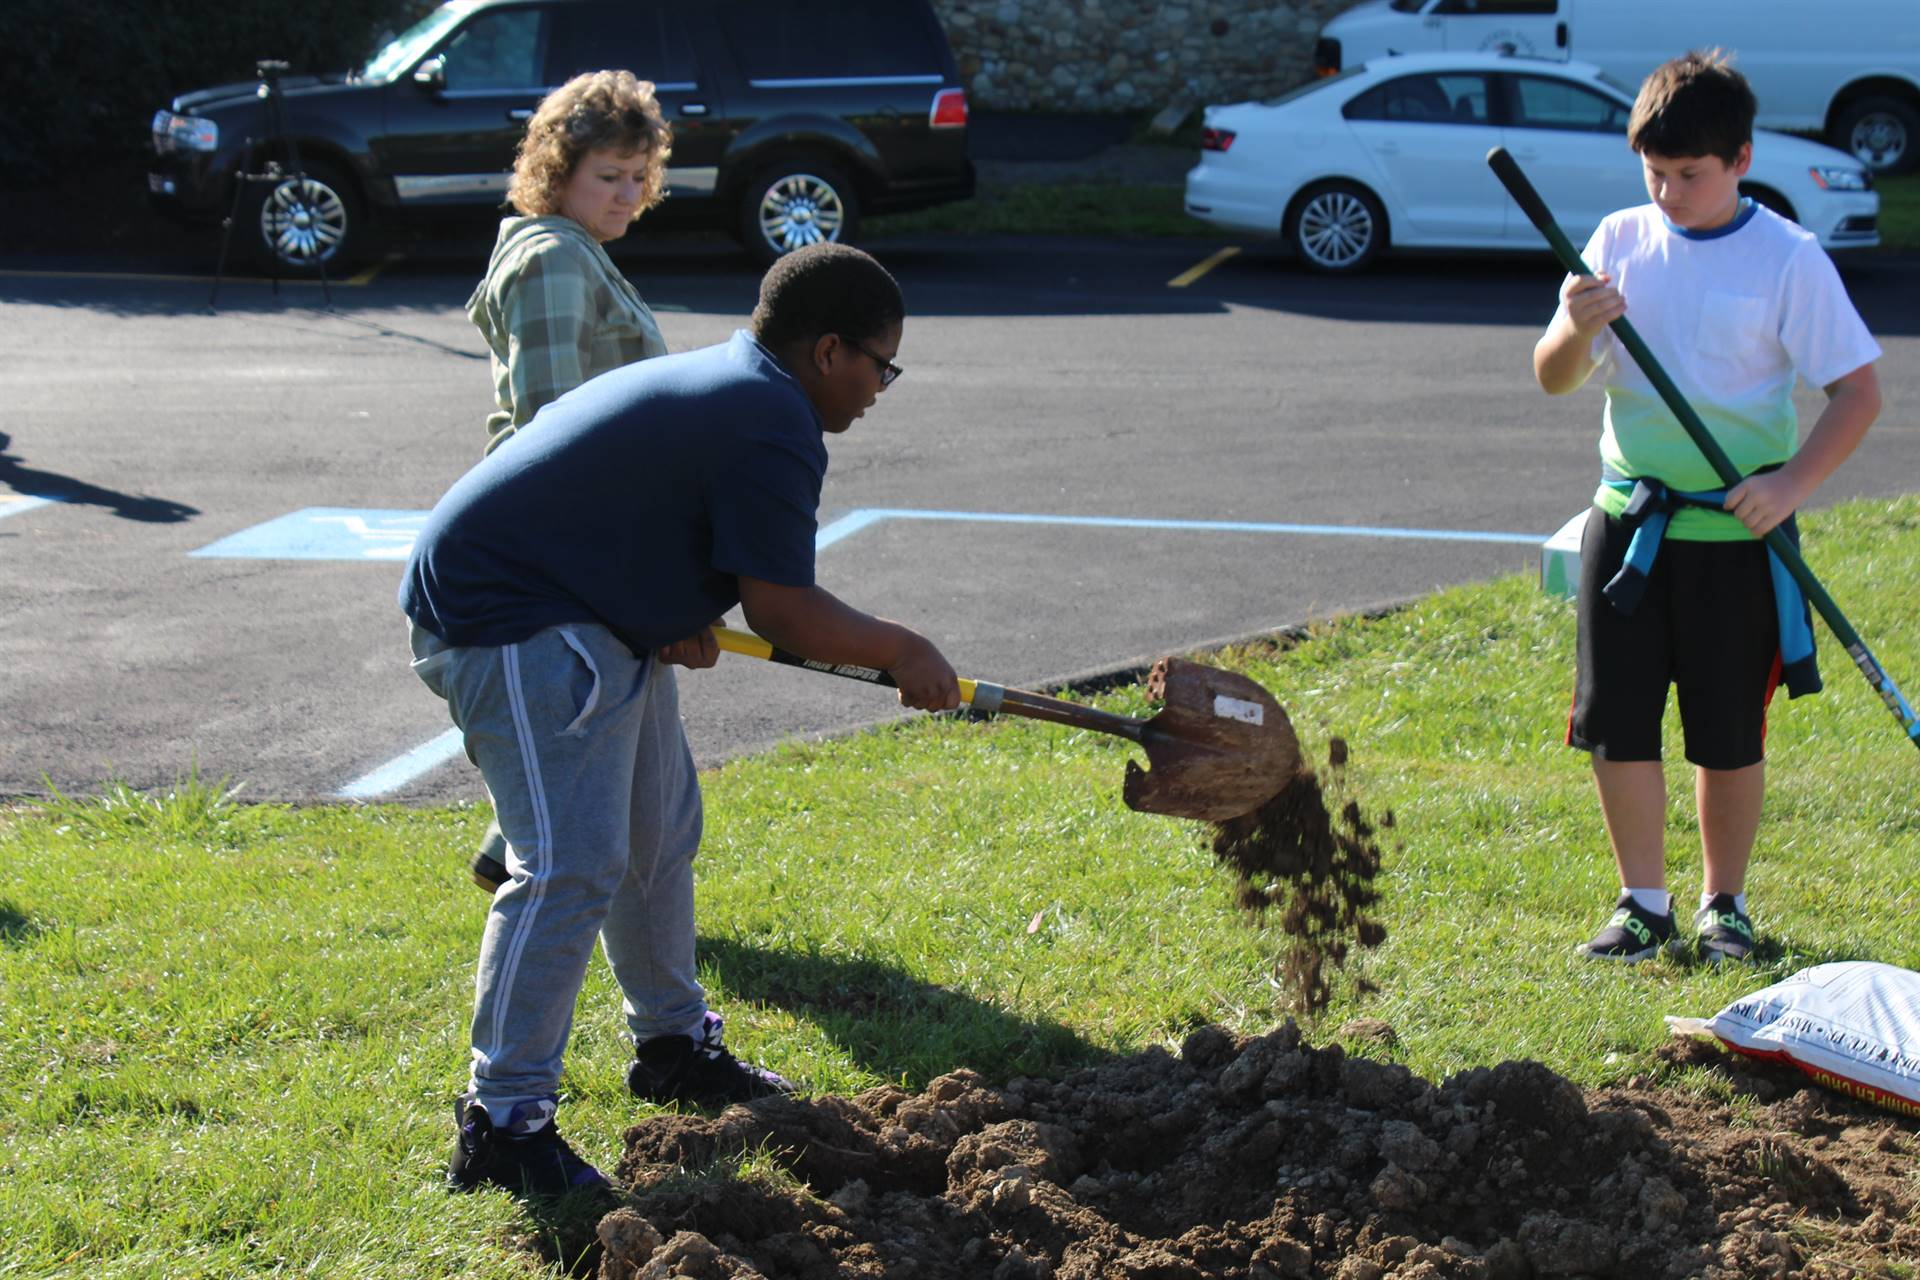 Student tossing dirt aside with a shovel